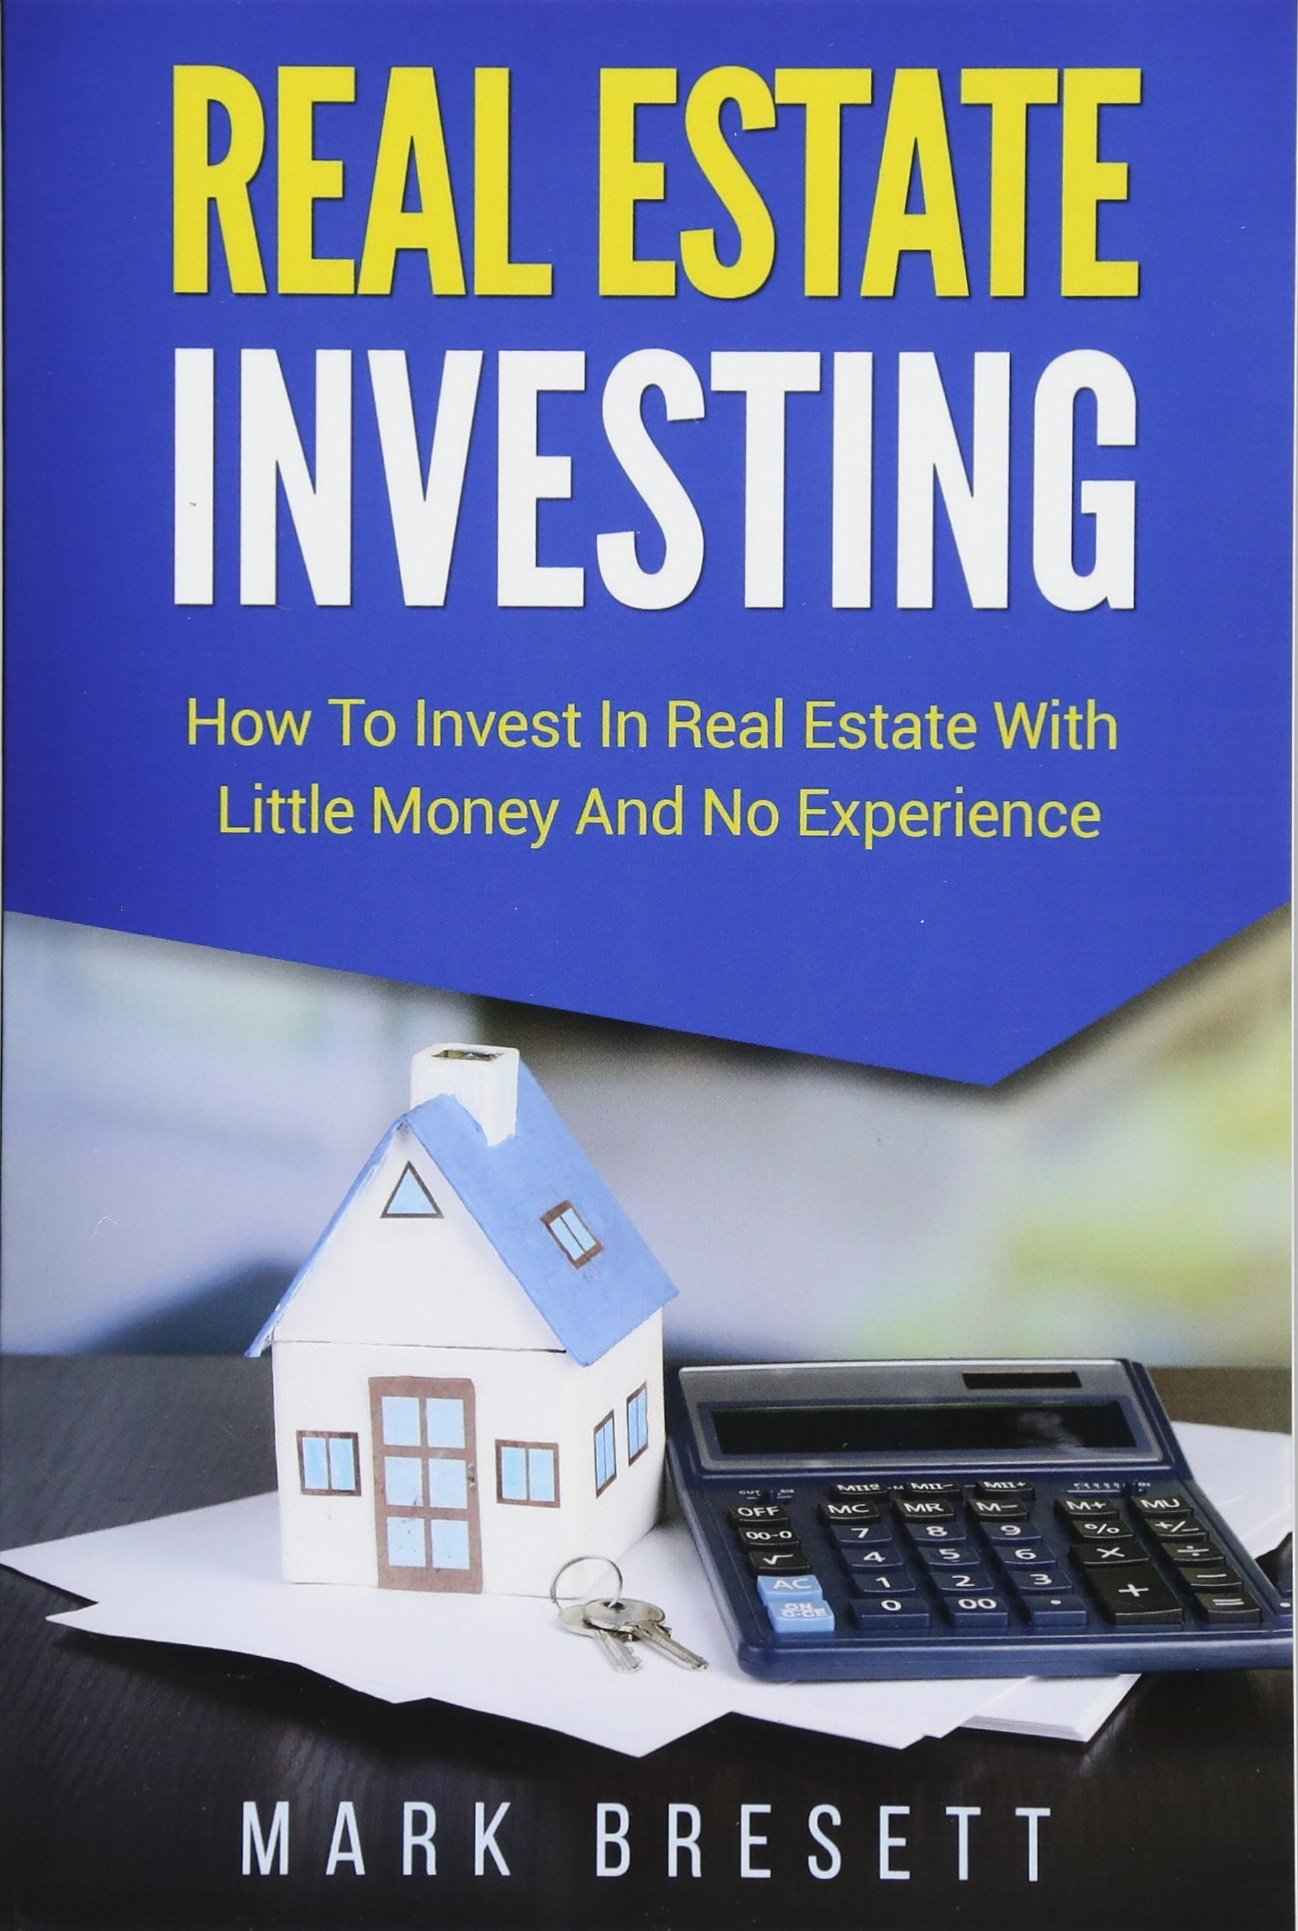 Download Real Estate Investing: How To Invest In Real Estate With Little Money And No Experience ebook